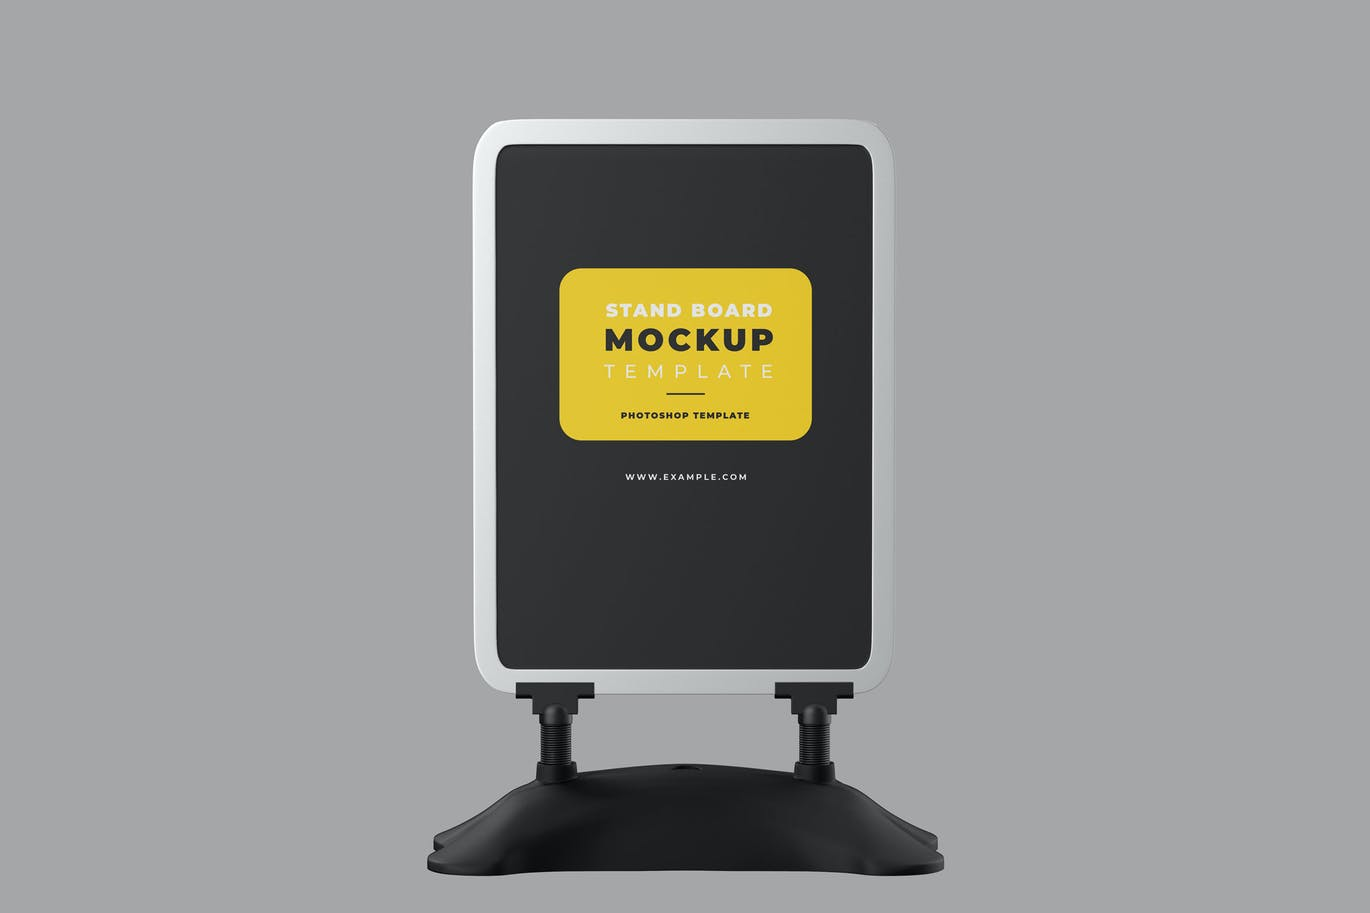 Stand Board Mock-Up Template